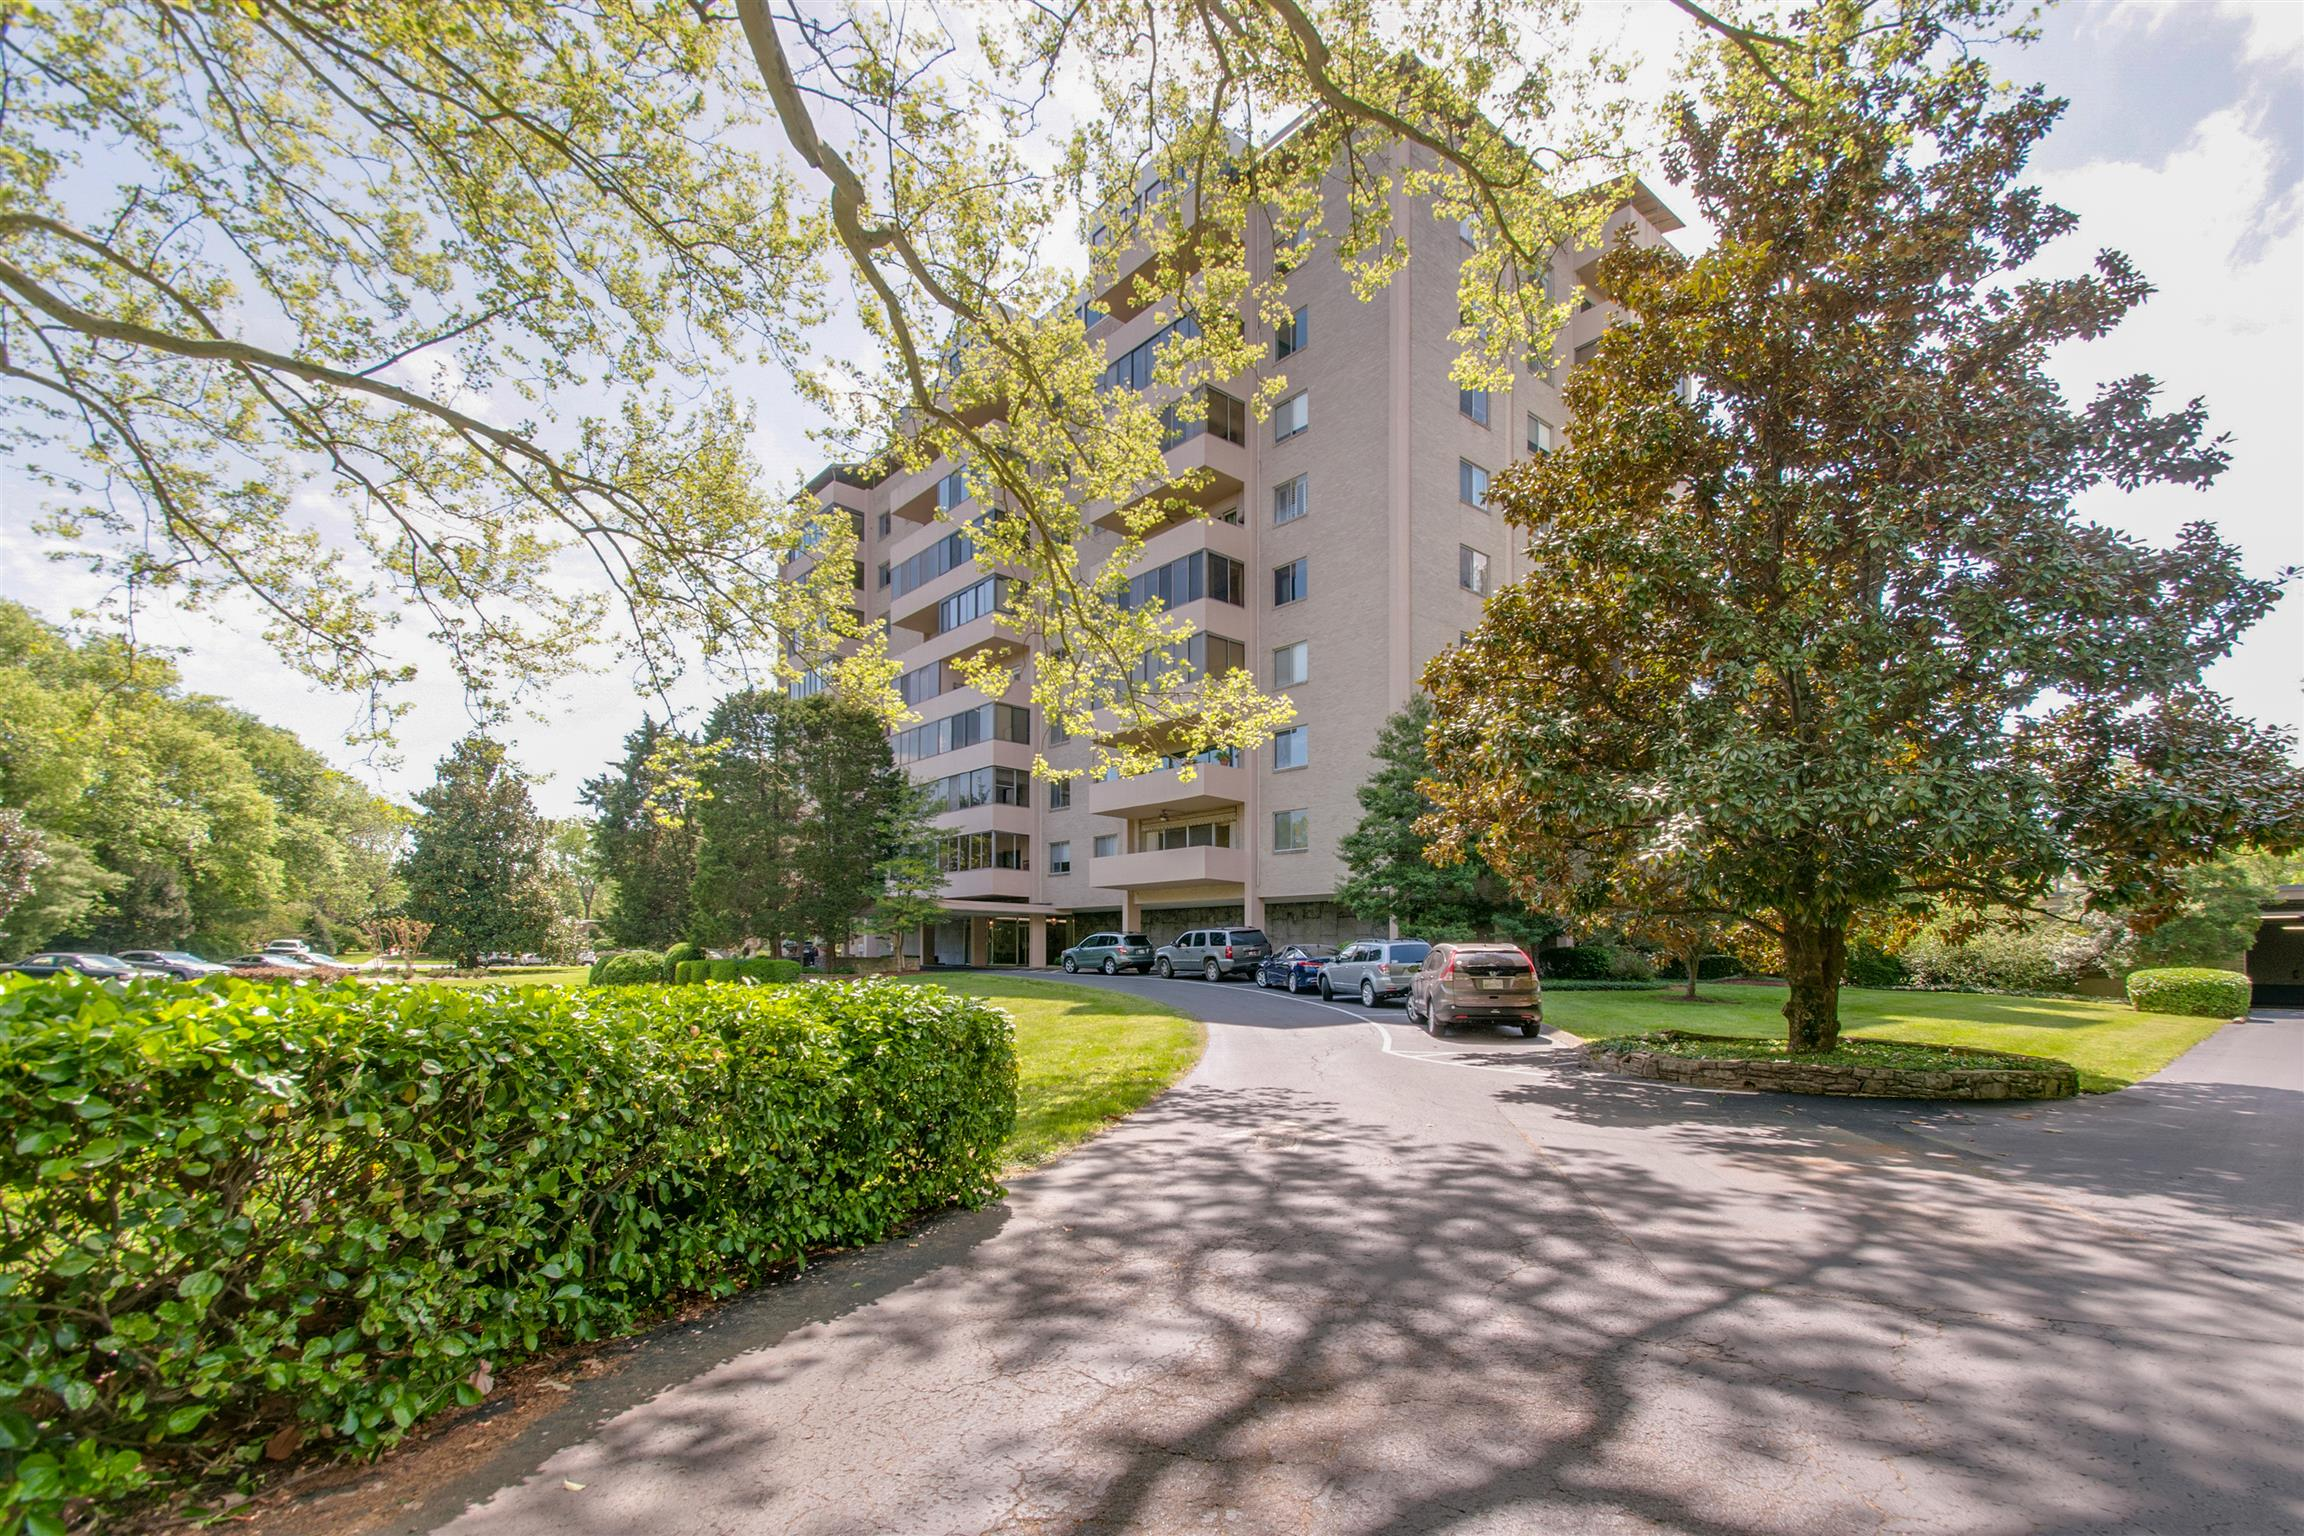 105 Leake Ave Apt 30, one of homes for sale in Belle Meade